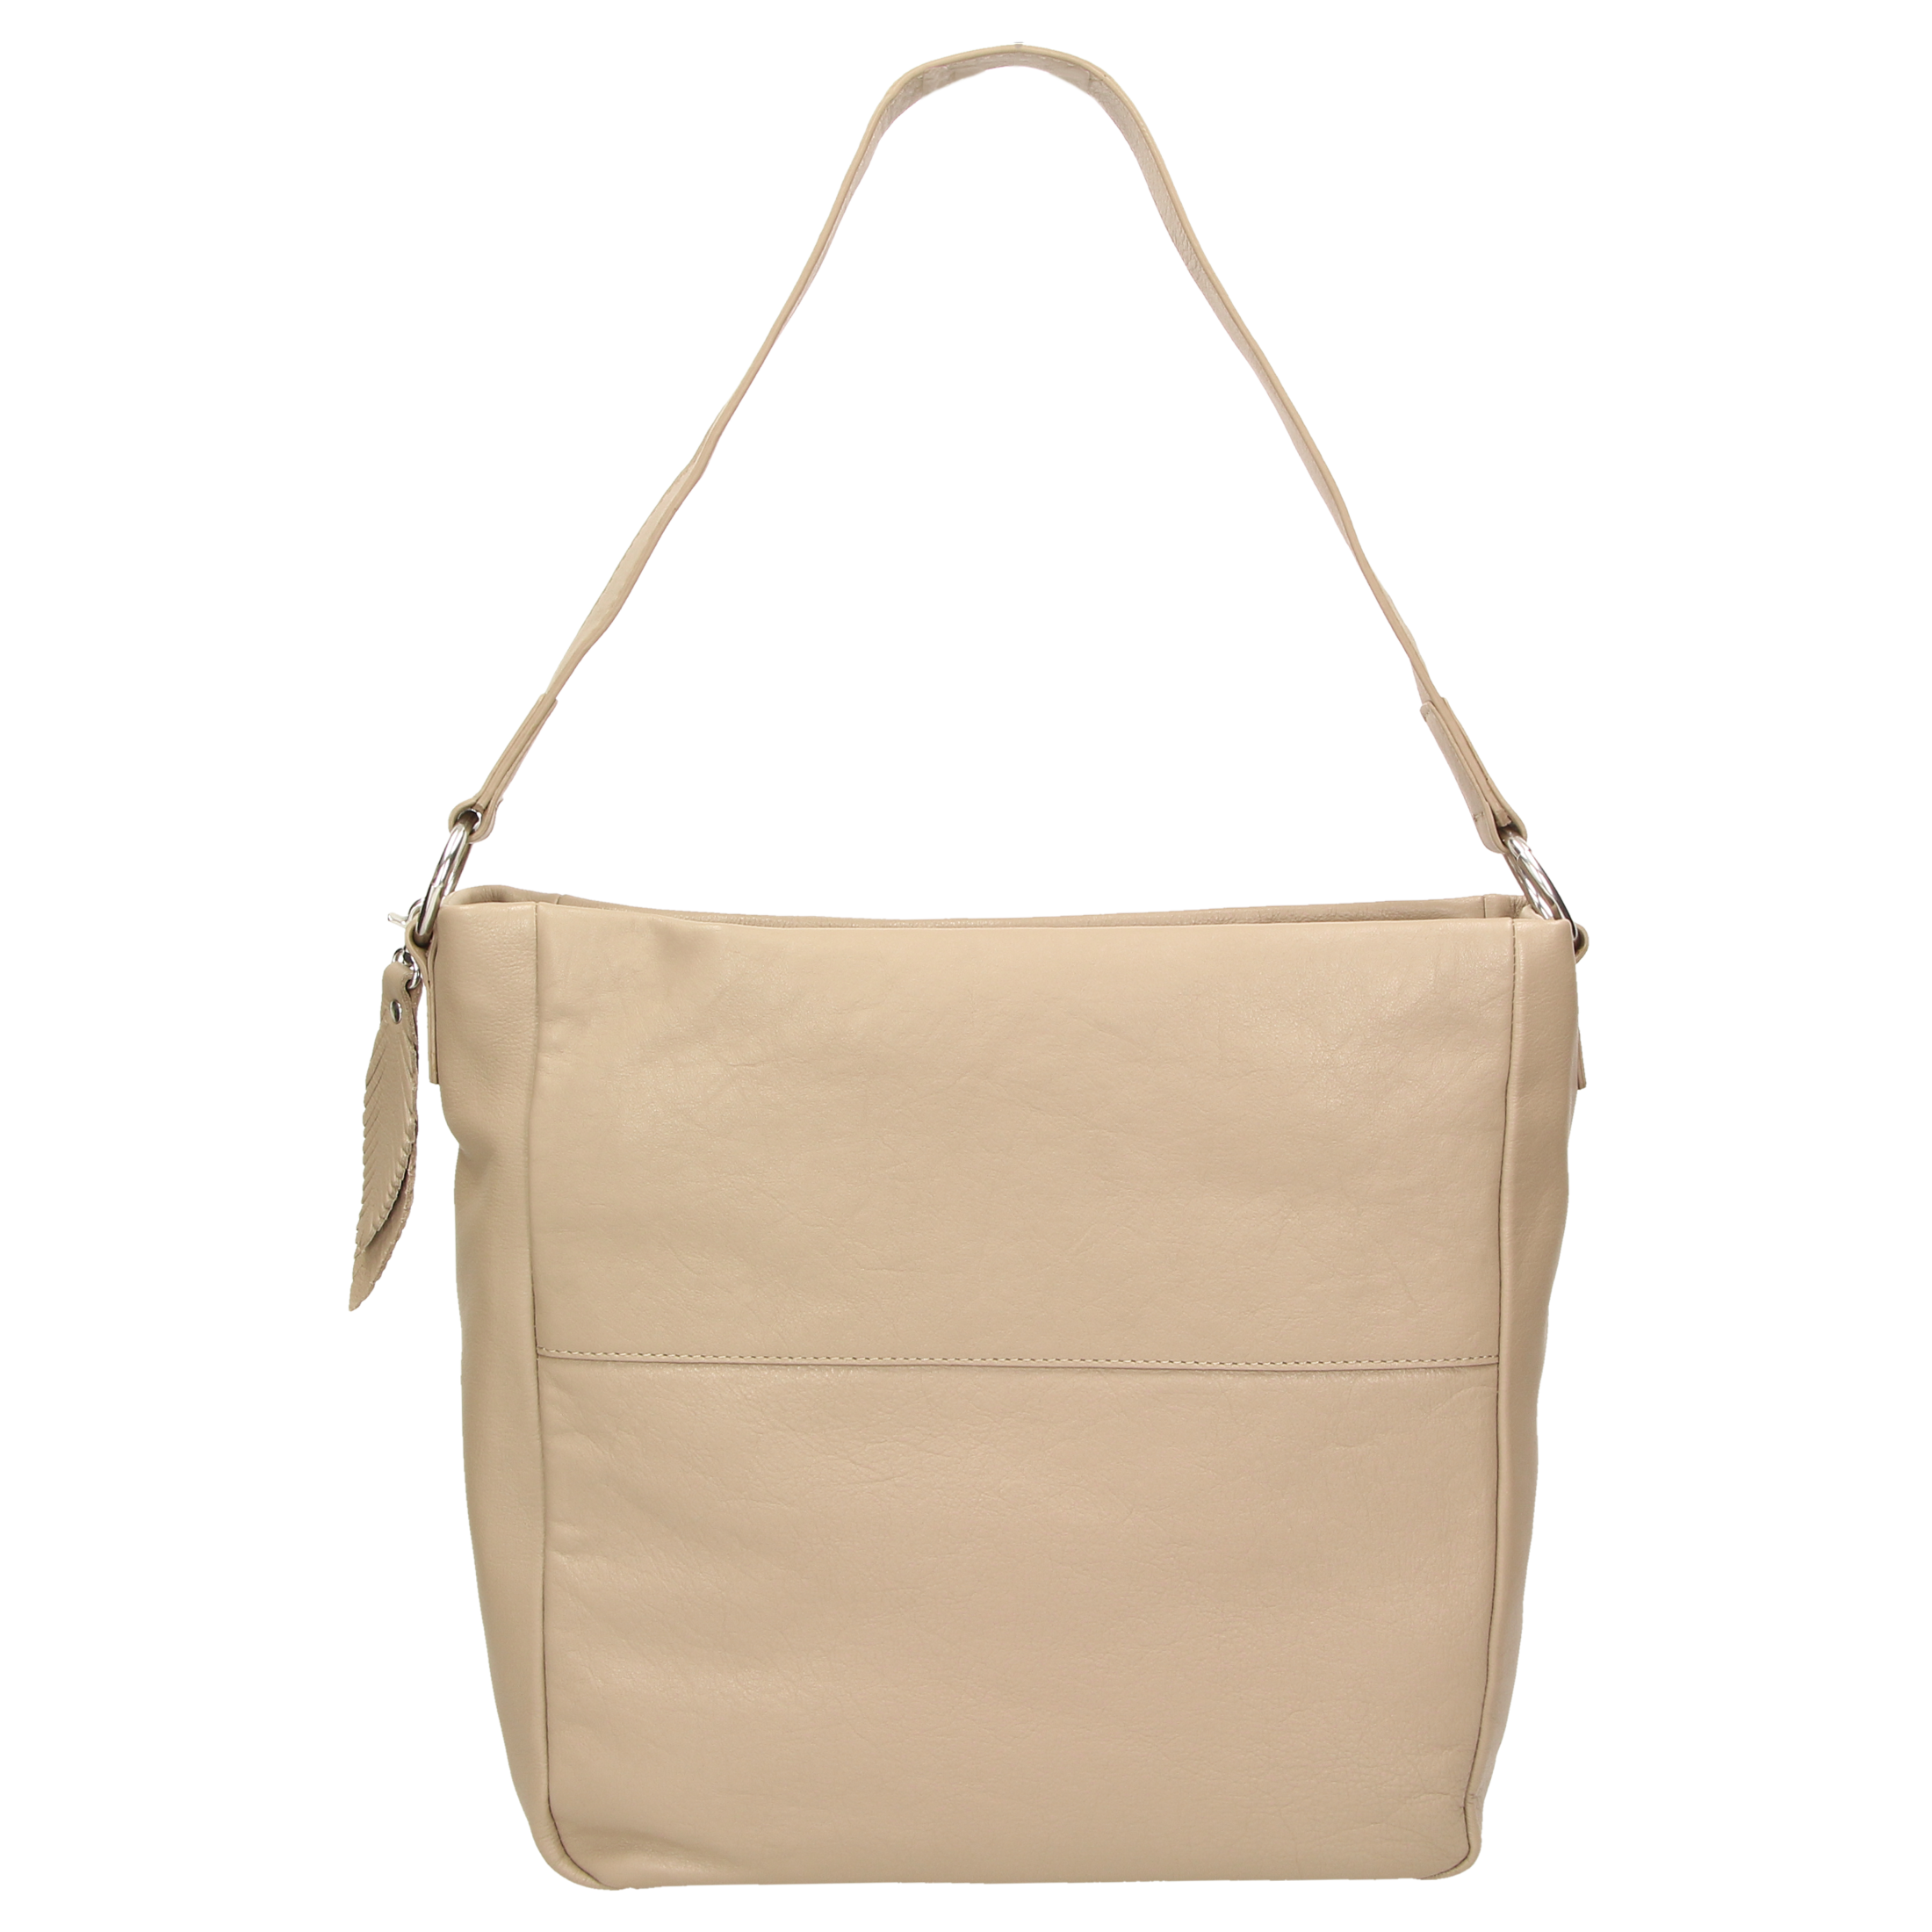 newest 4a077 415cc Official Sioux Online Shop | Hobo bag | purchase online